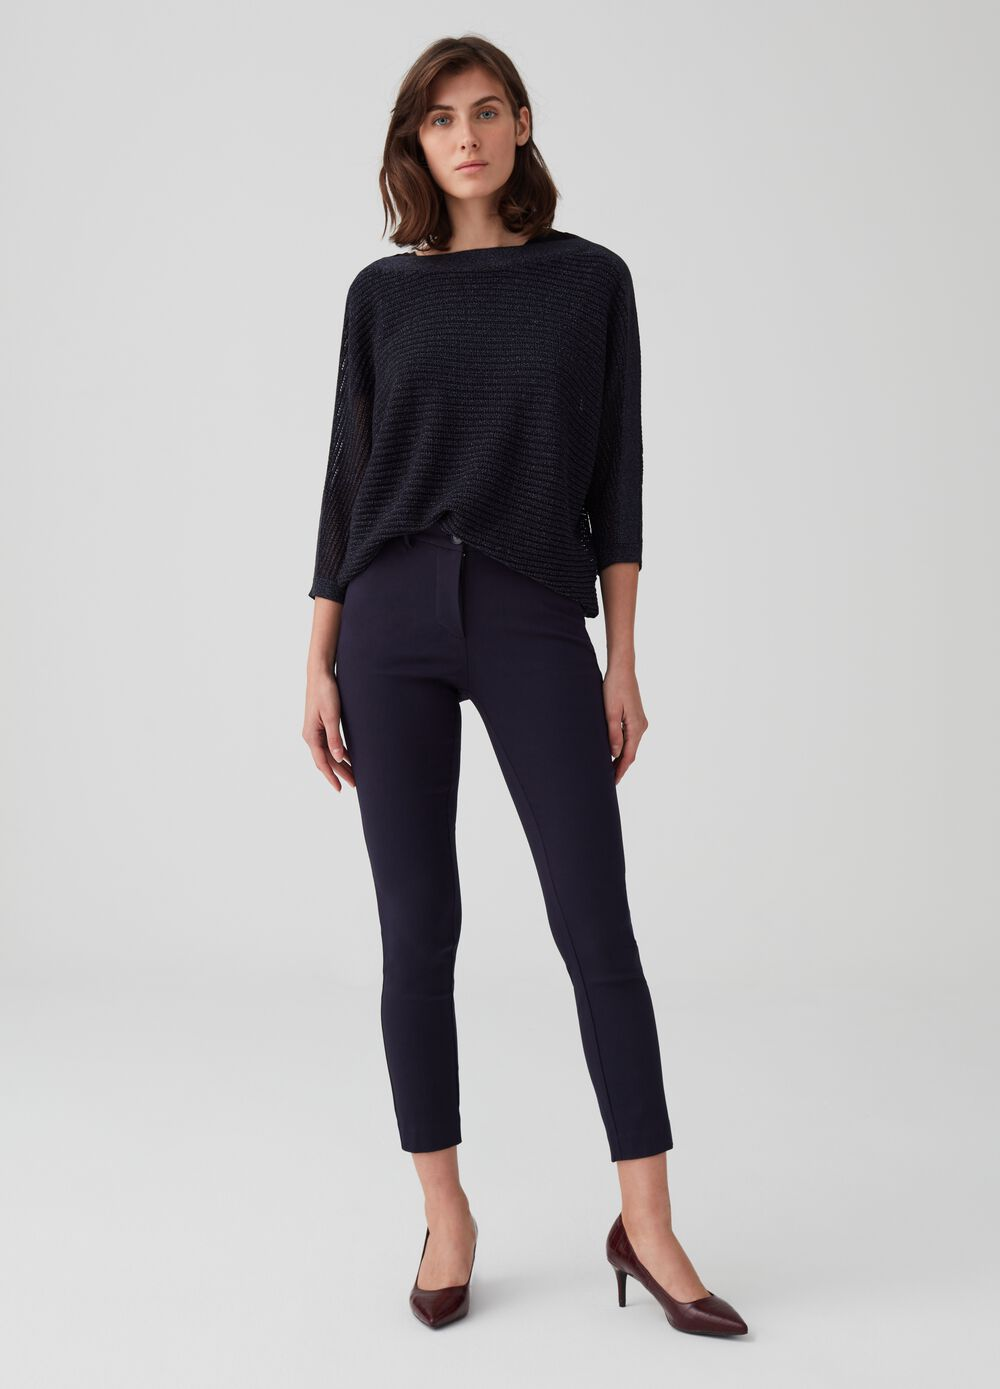 High-waisted stretch crop trousers with pockets